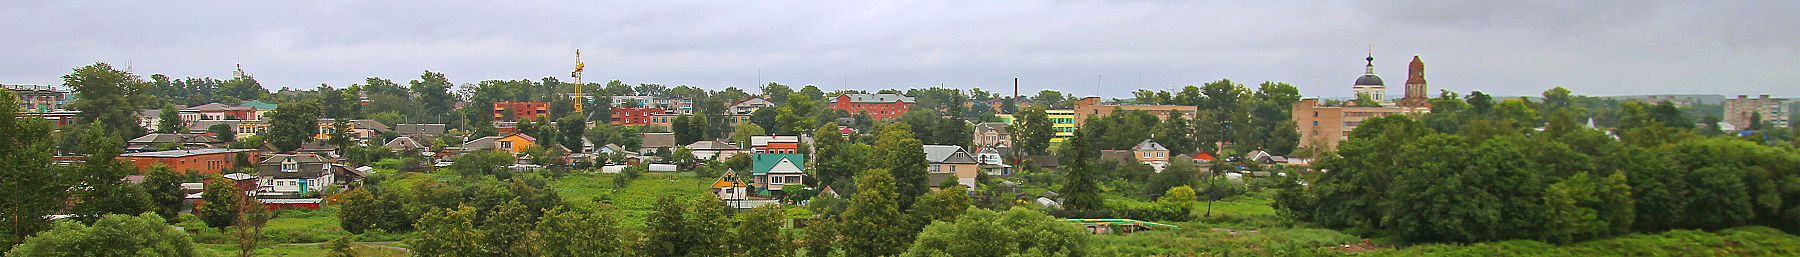 Mtsensk view on Zusha River and the town crop.jpg